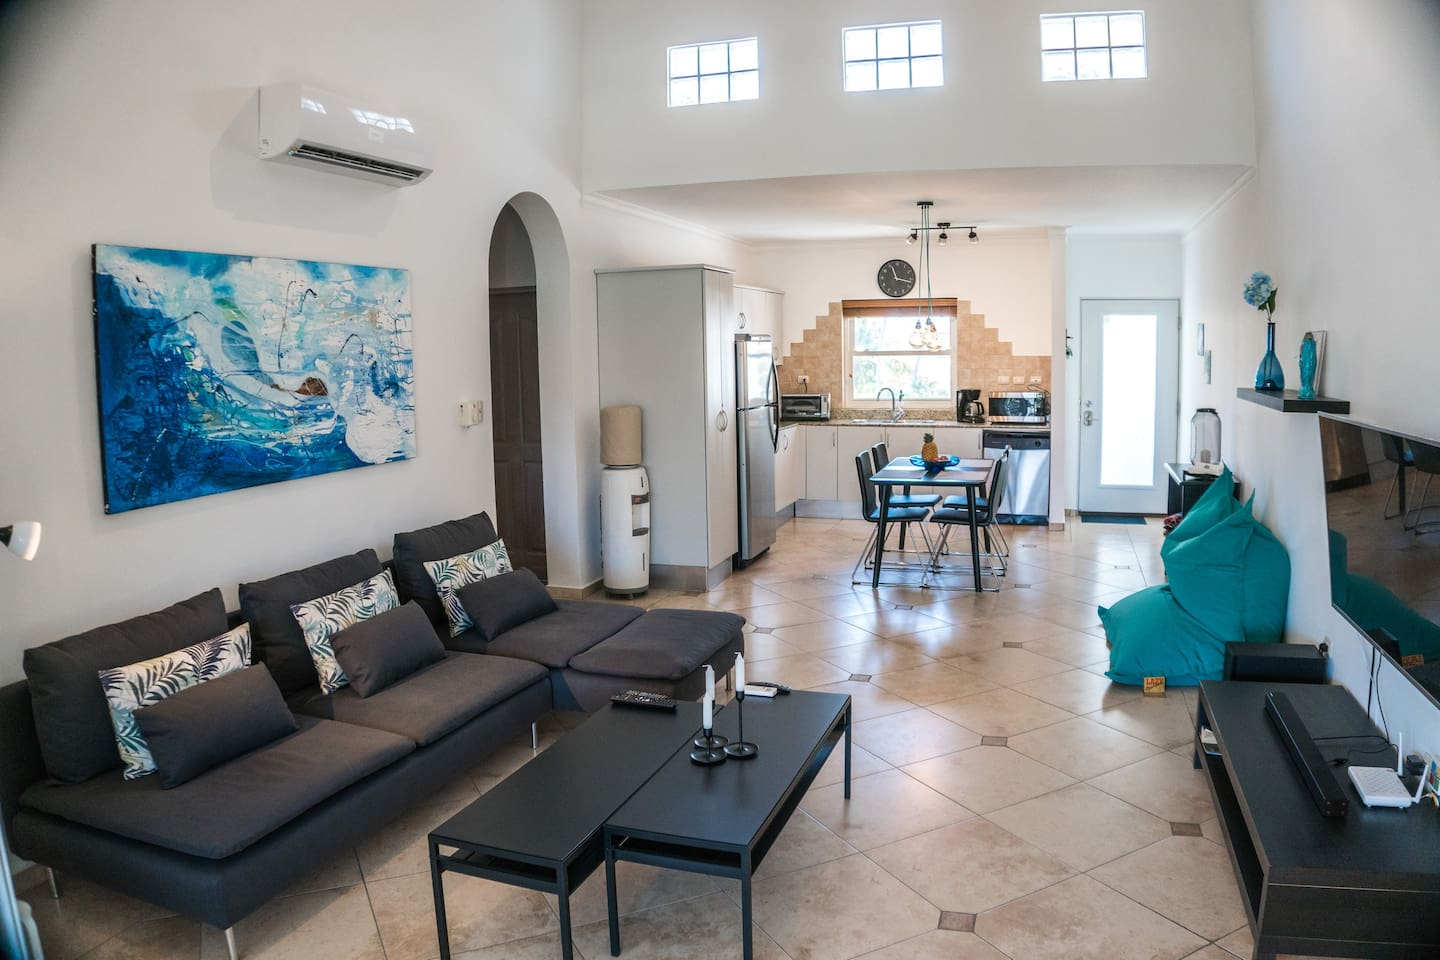 Newly renovated and furnished kiter dream penthouse